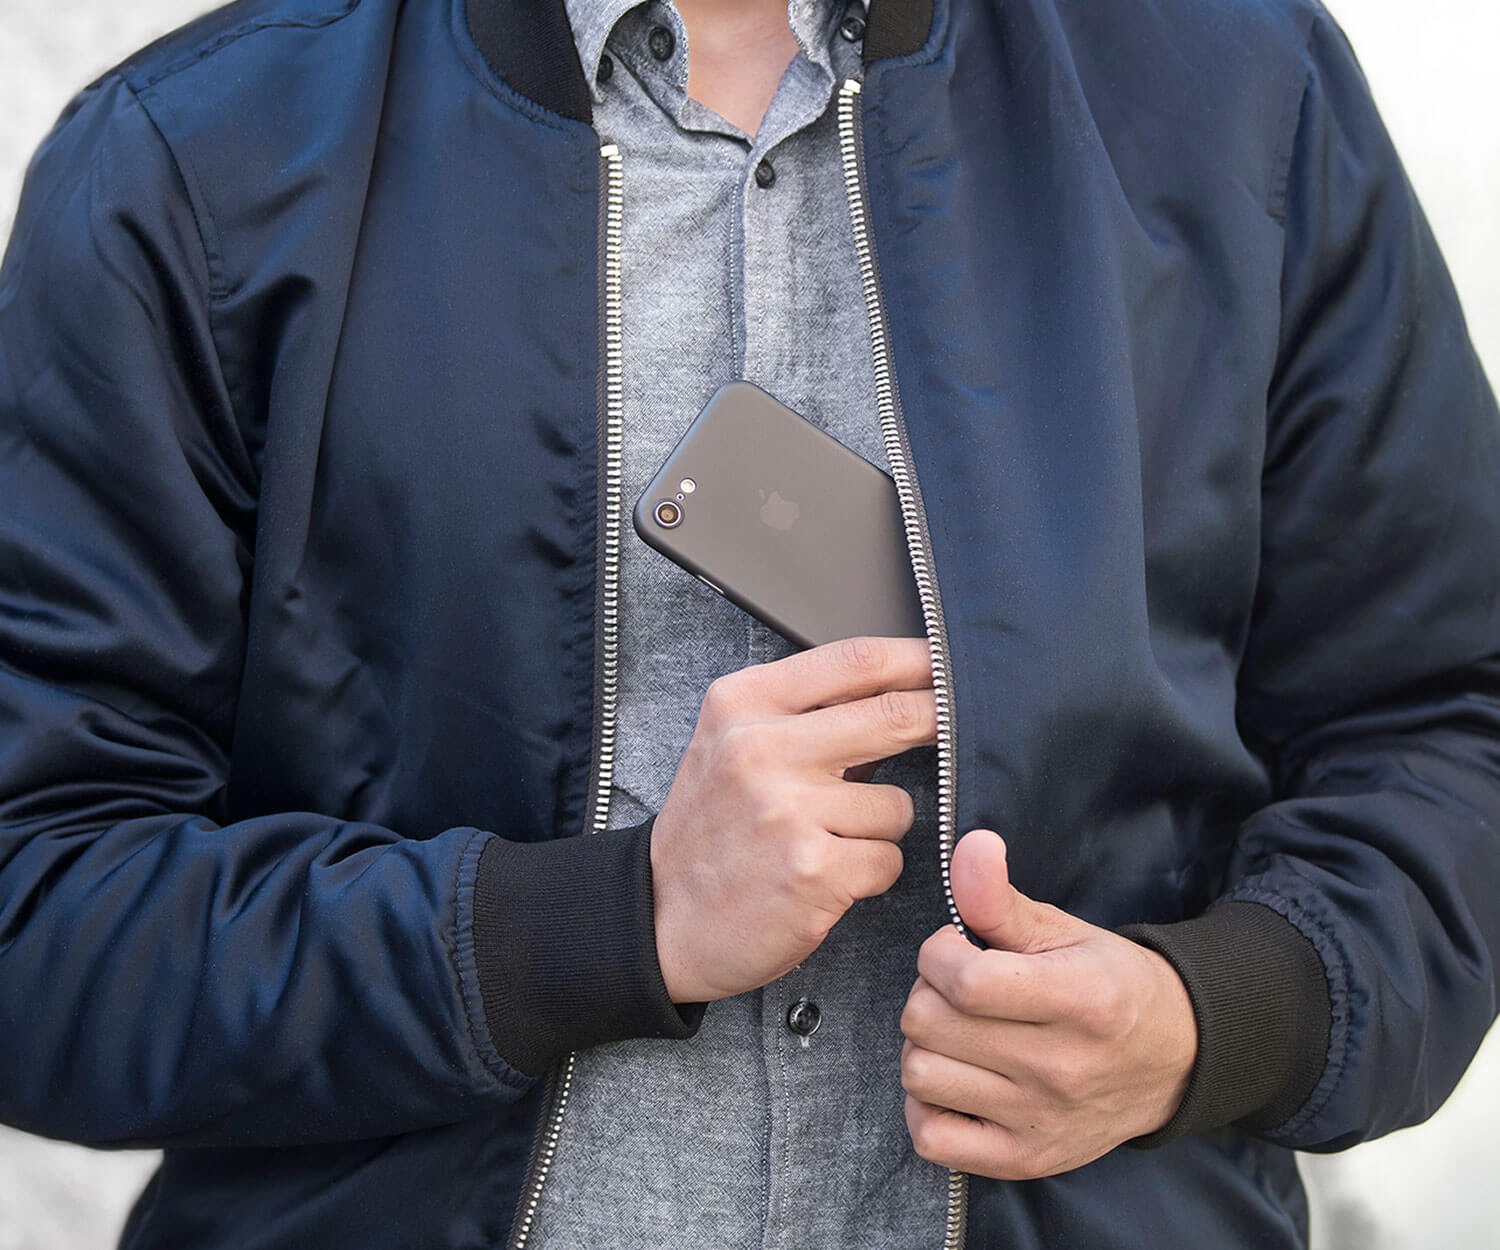 thin, cool, stylish iPhone 8 case